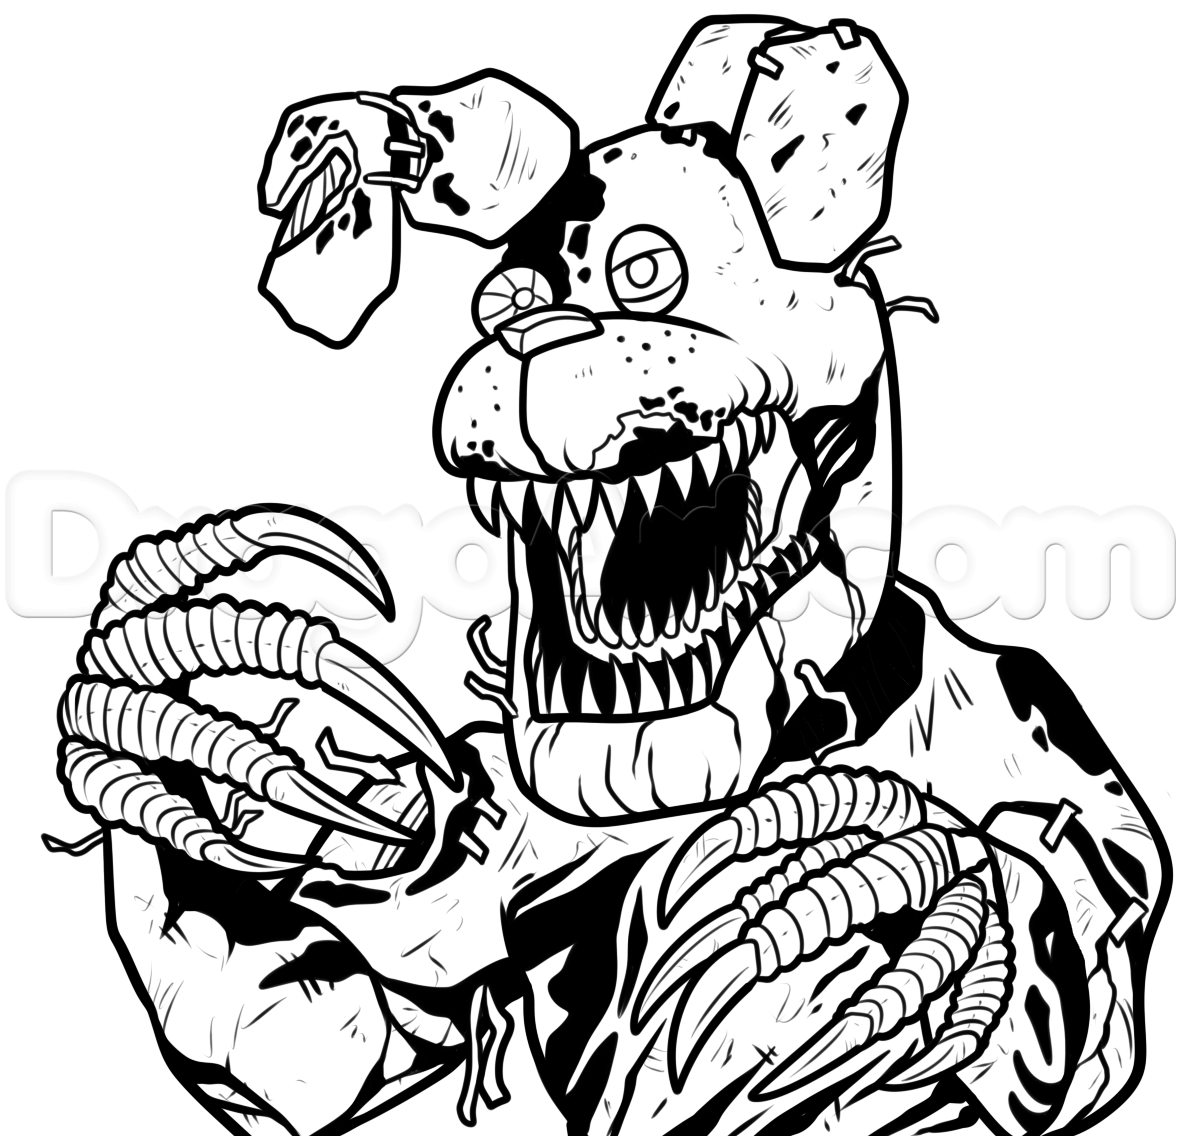 fnaf 4 coloring pages all characters - bonnie coloring pages nightmare drawing